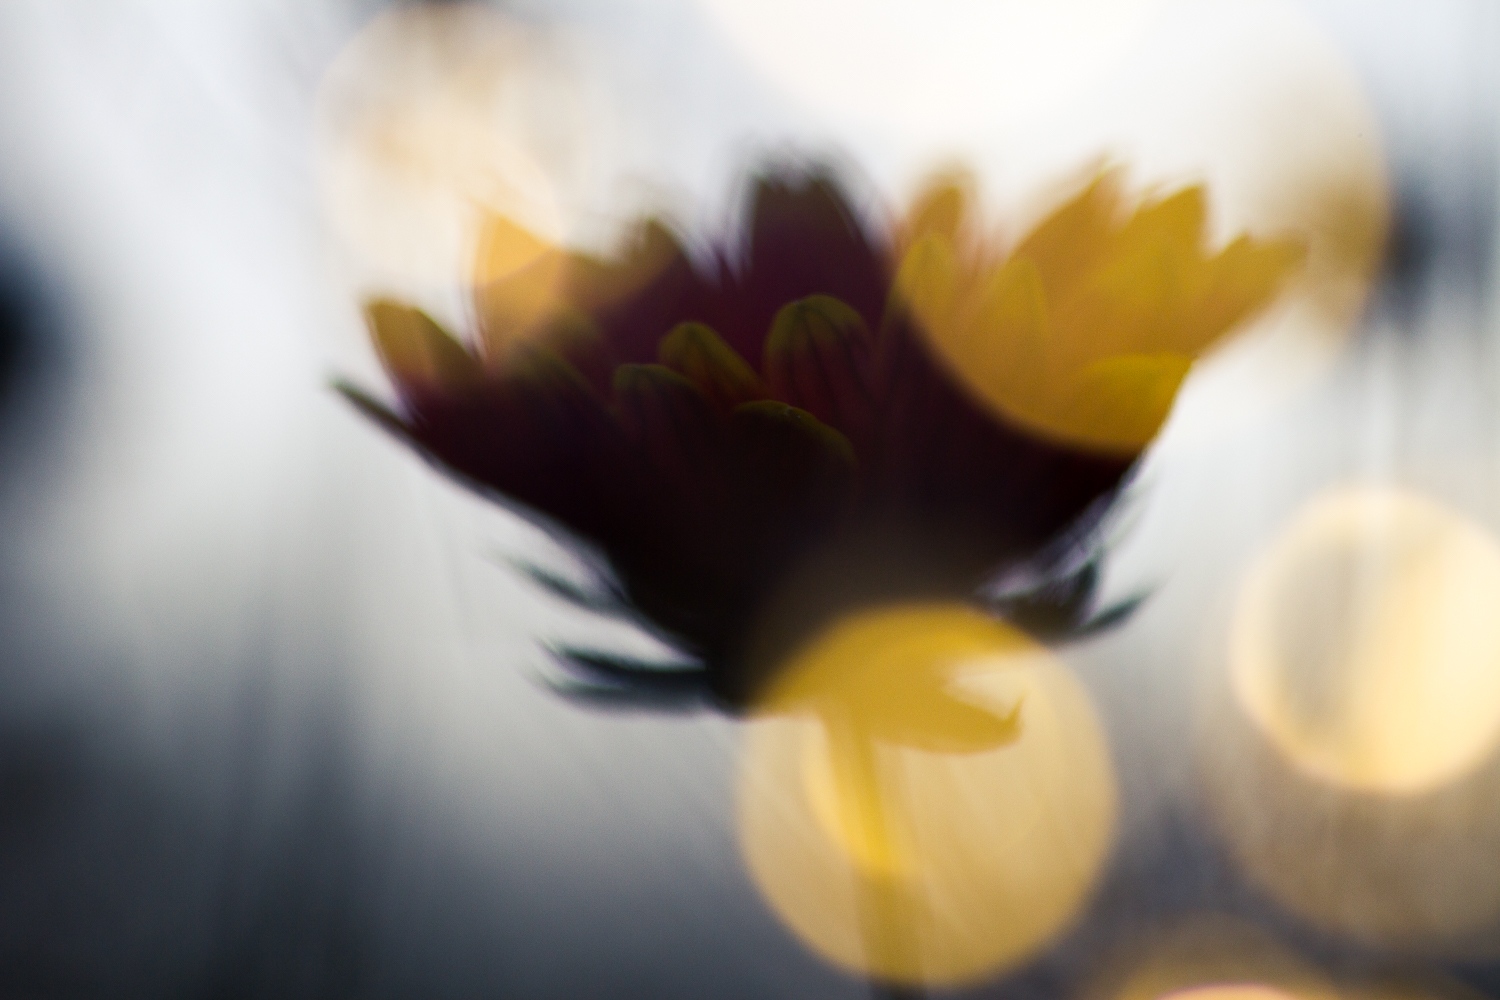 fairy light macro photography flower abstract